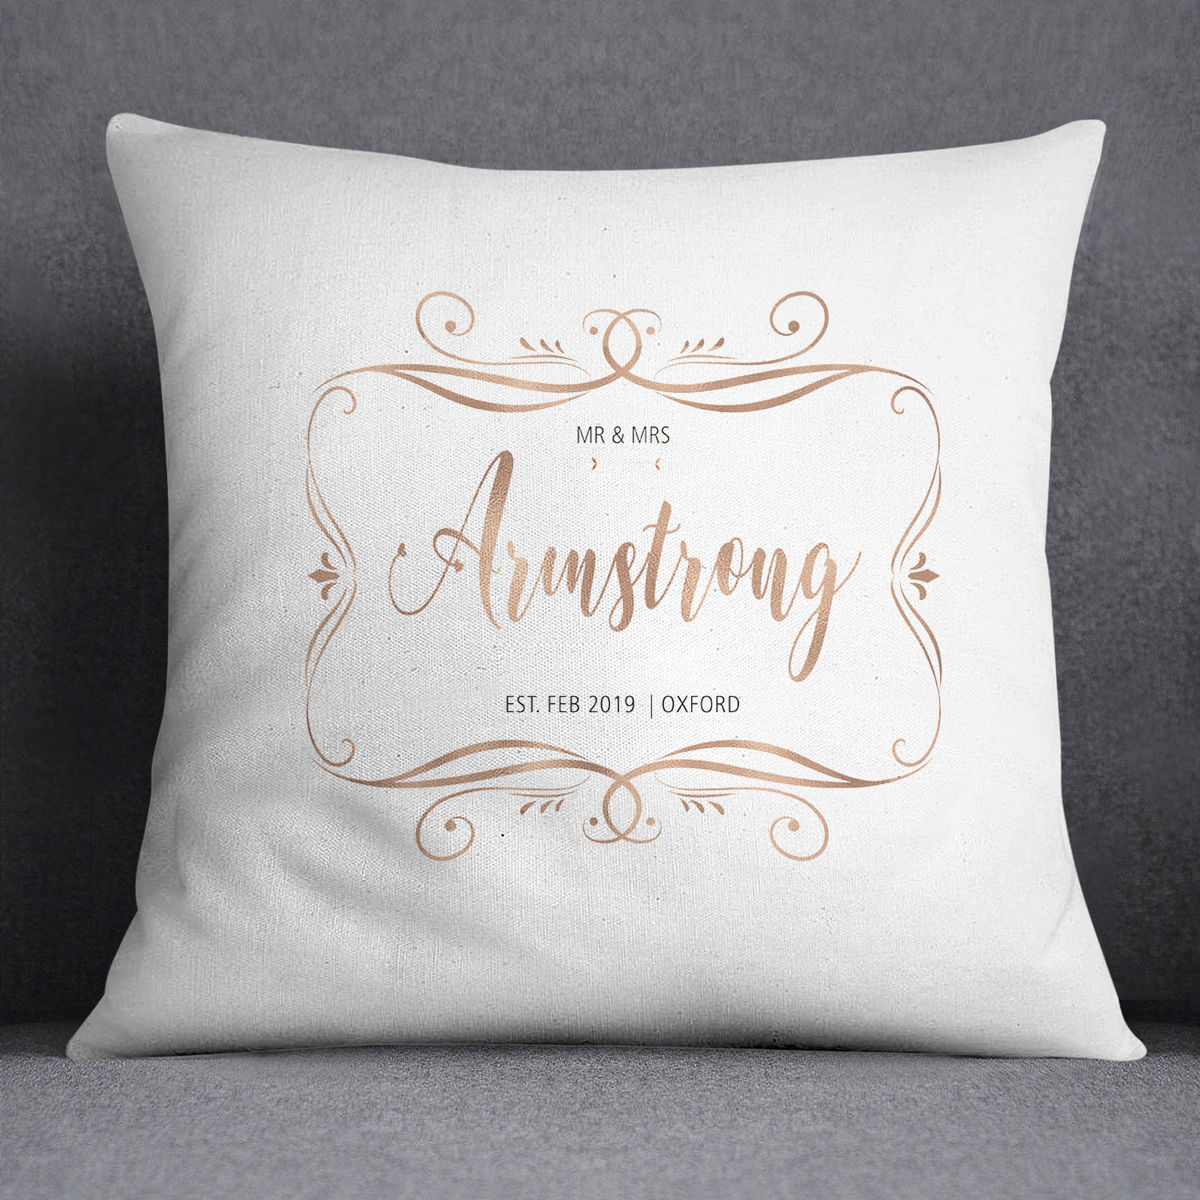 Customised Wedding Gift - product images  of